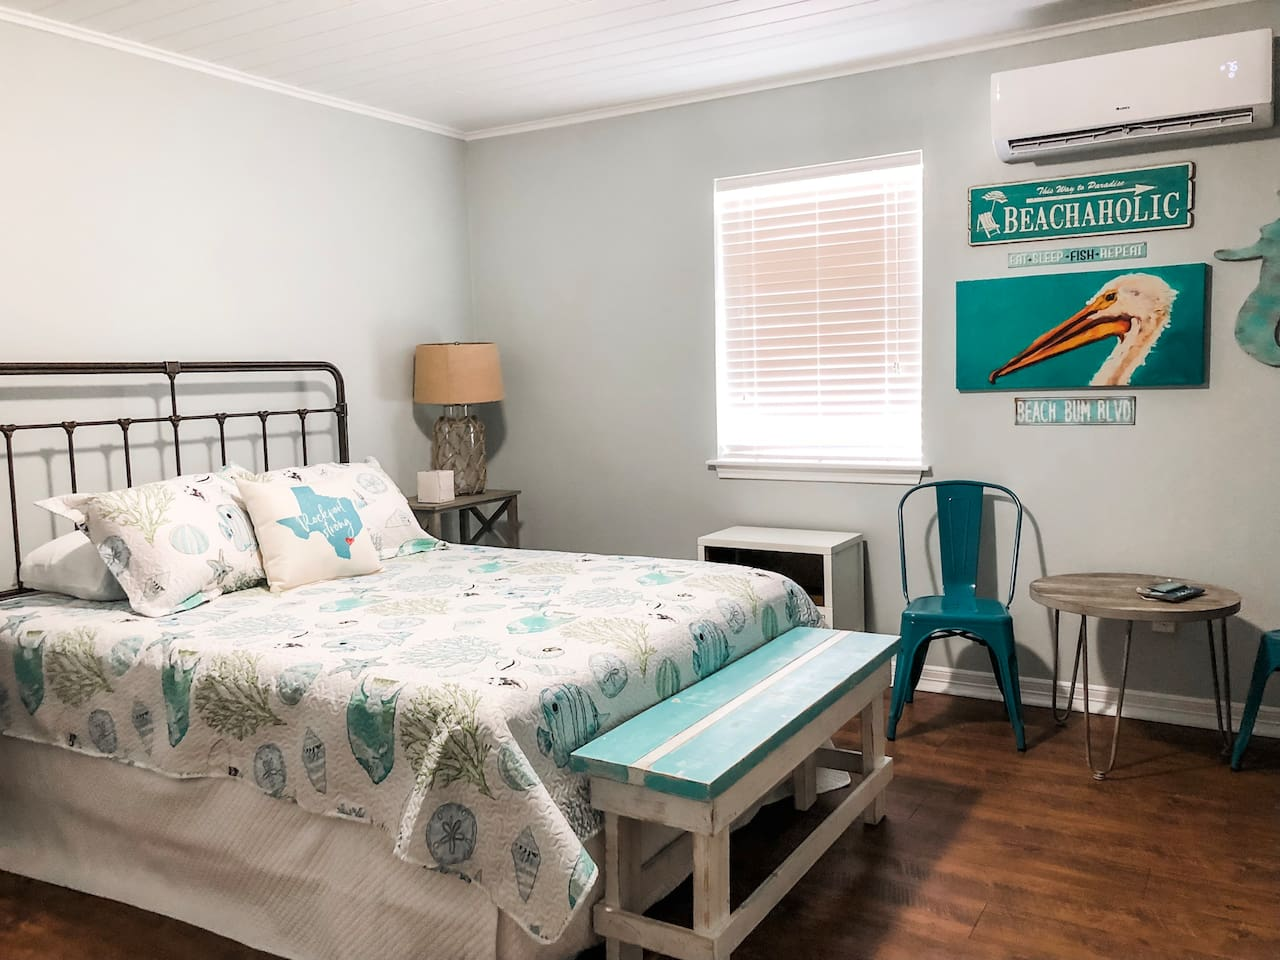 Feeling some Coastal Vibes in Cottage #1!